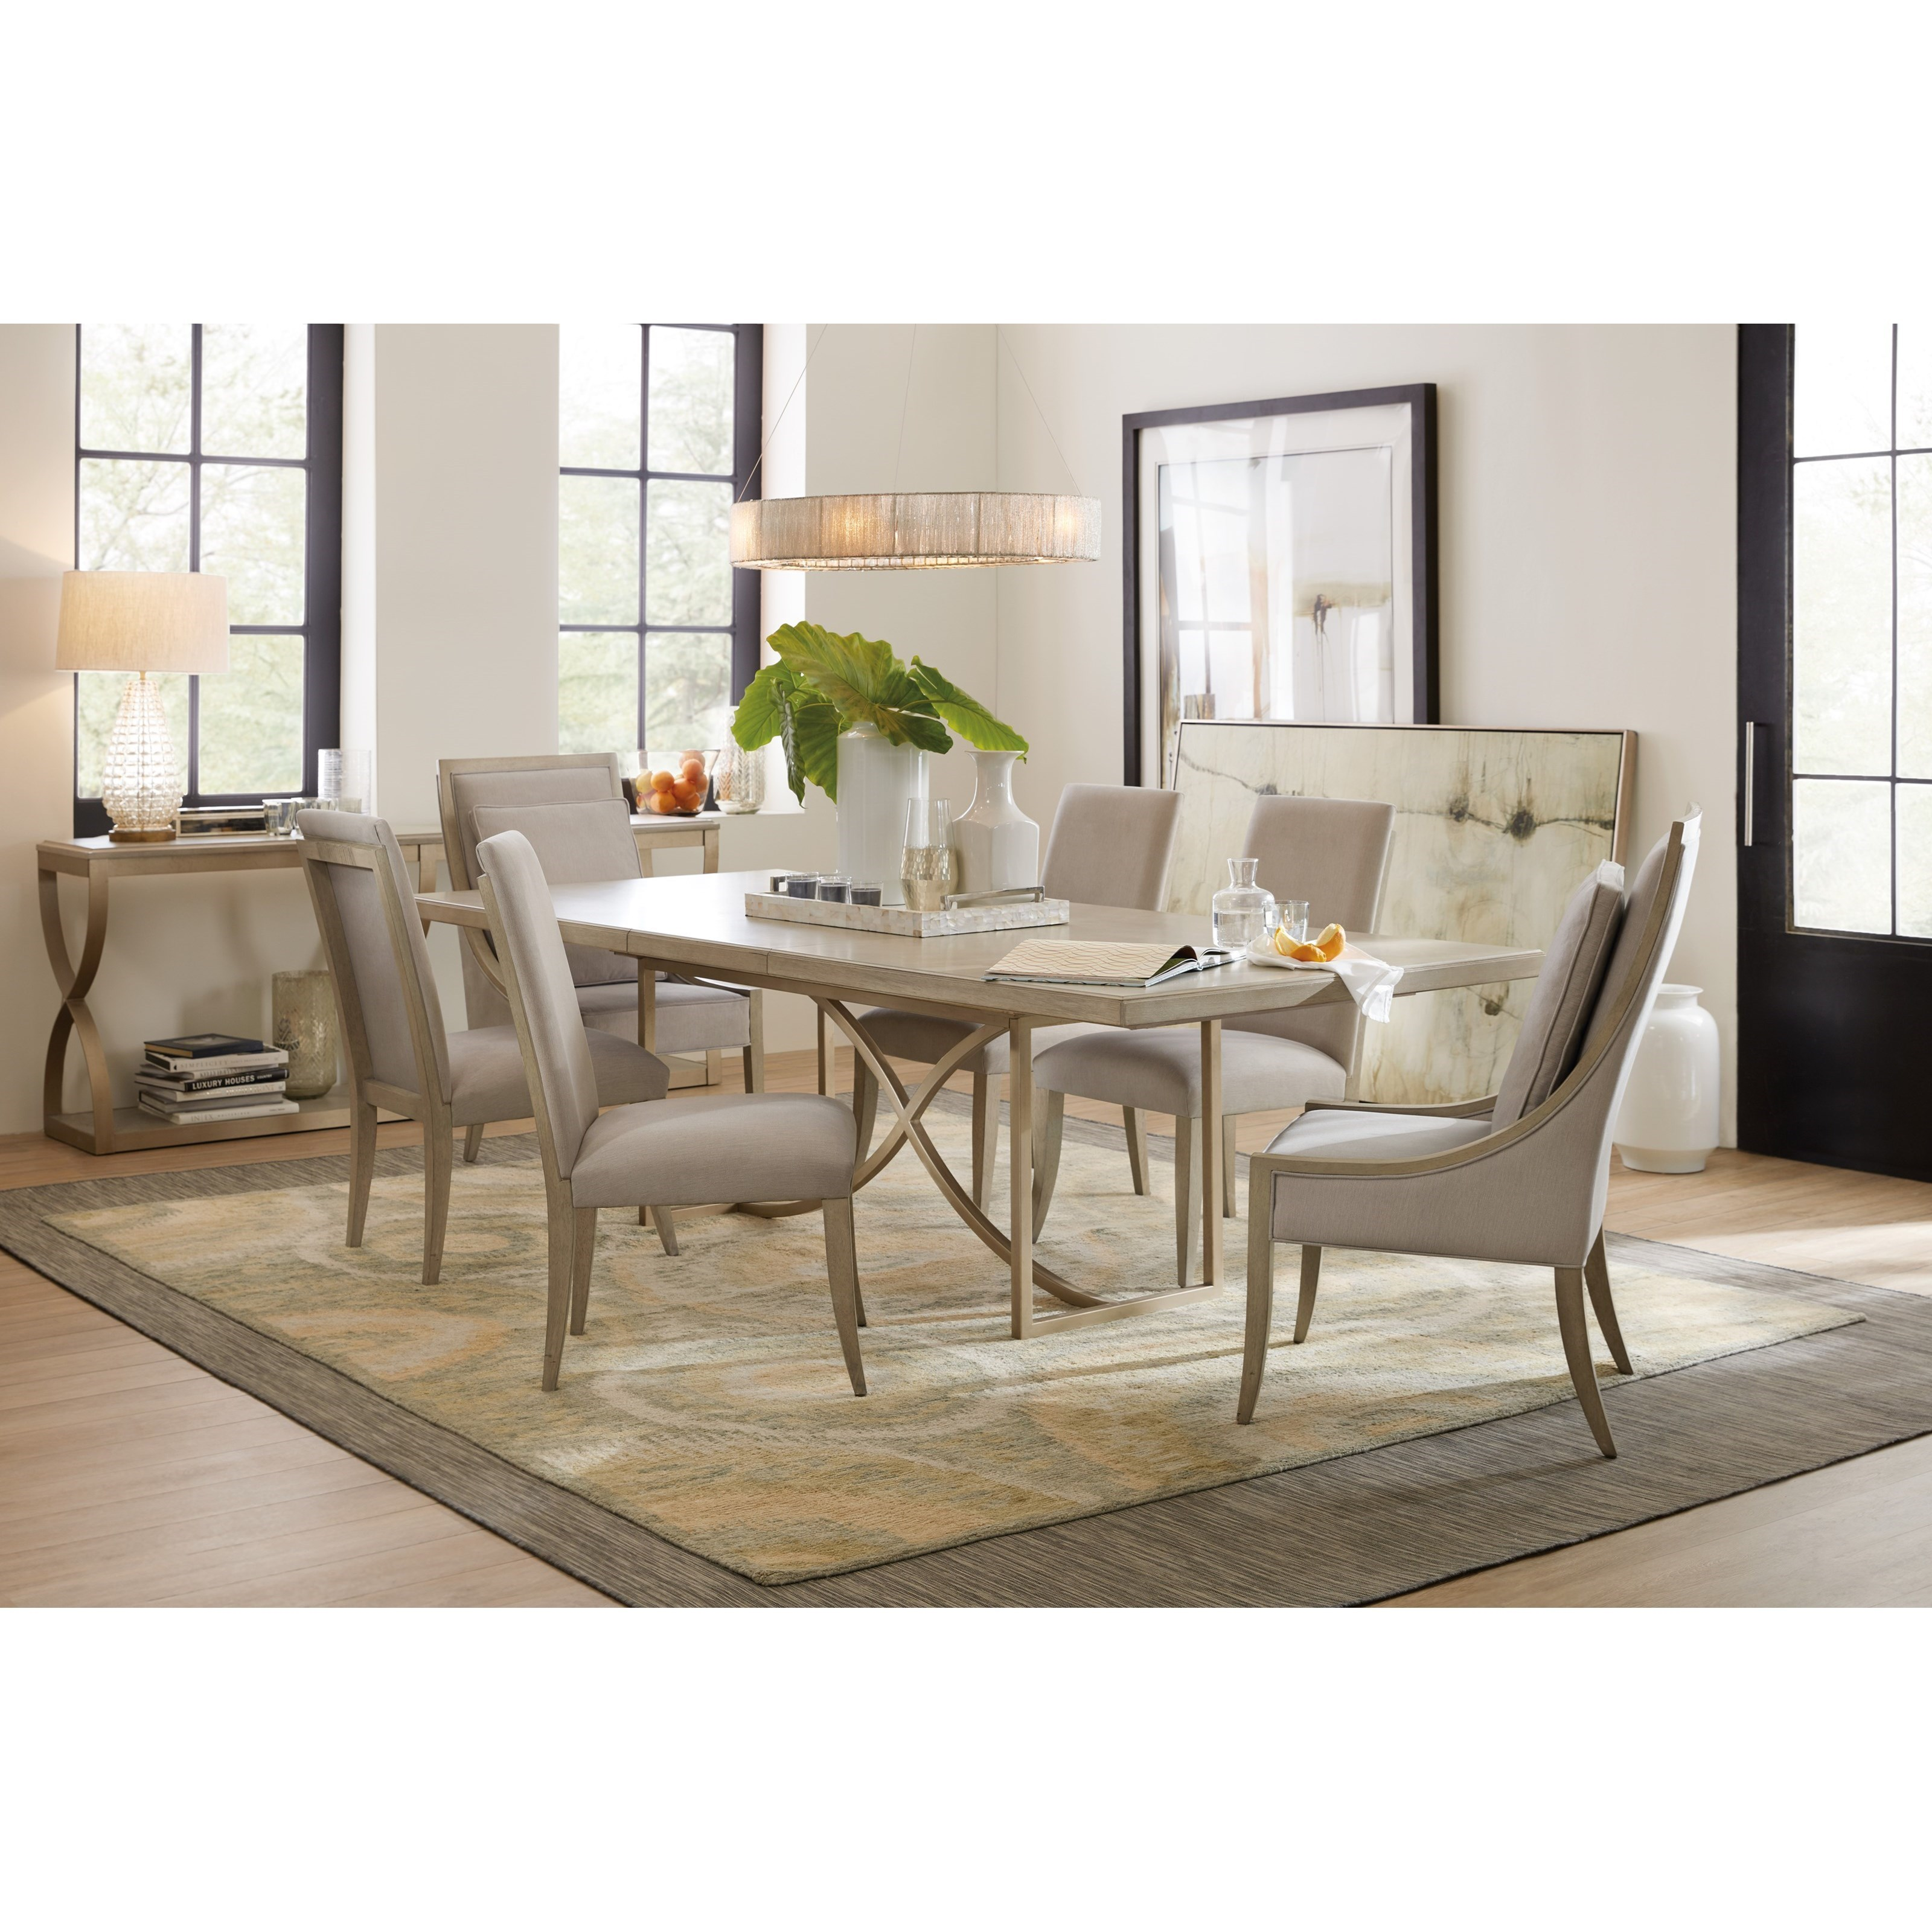 ... Hooker Furniture Elixir80in Rectangular Dining Table With 20in Leaf